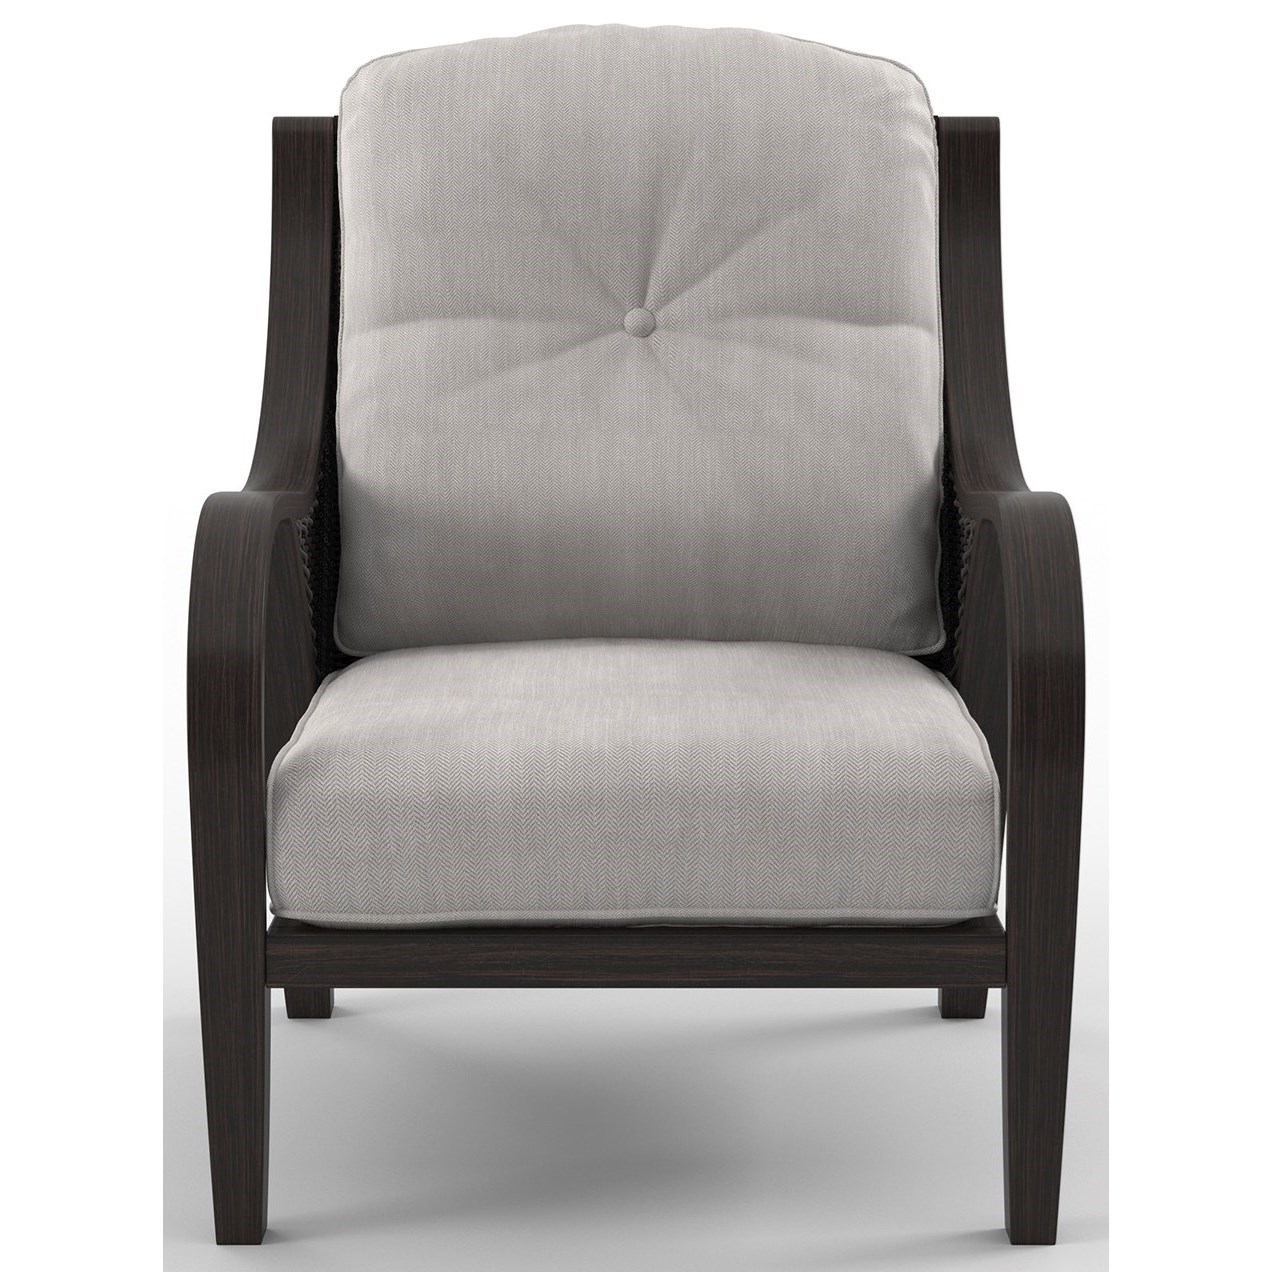 Set of 2 Lounge Chairs with Cushion